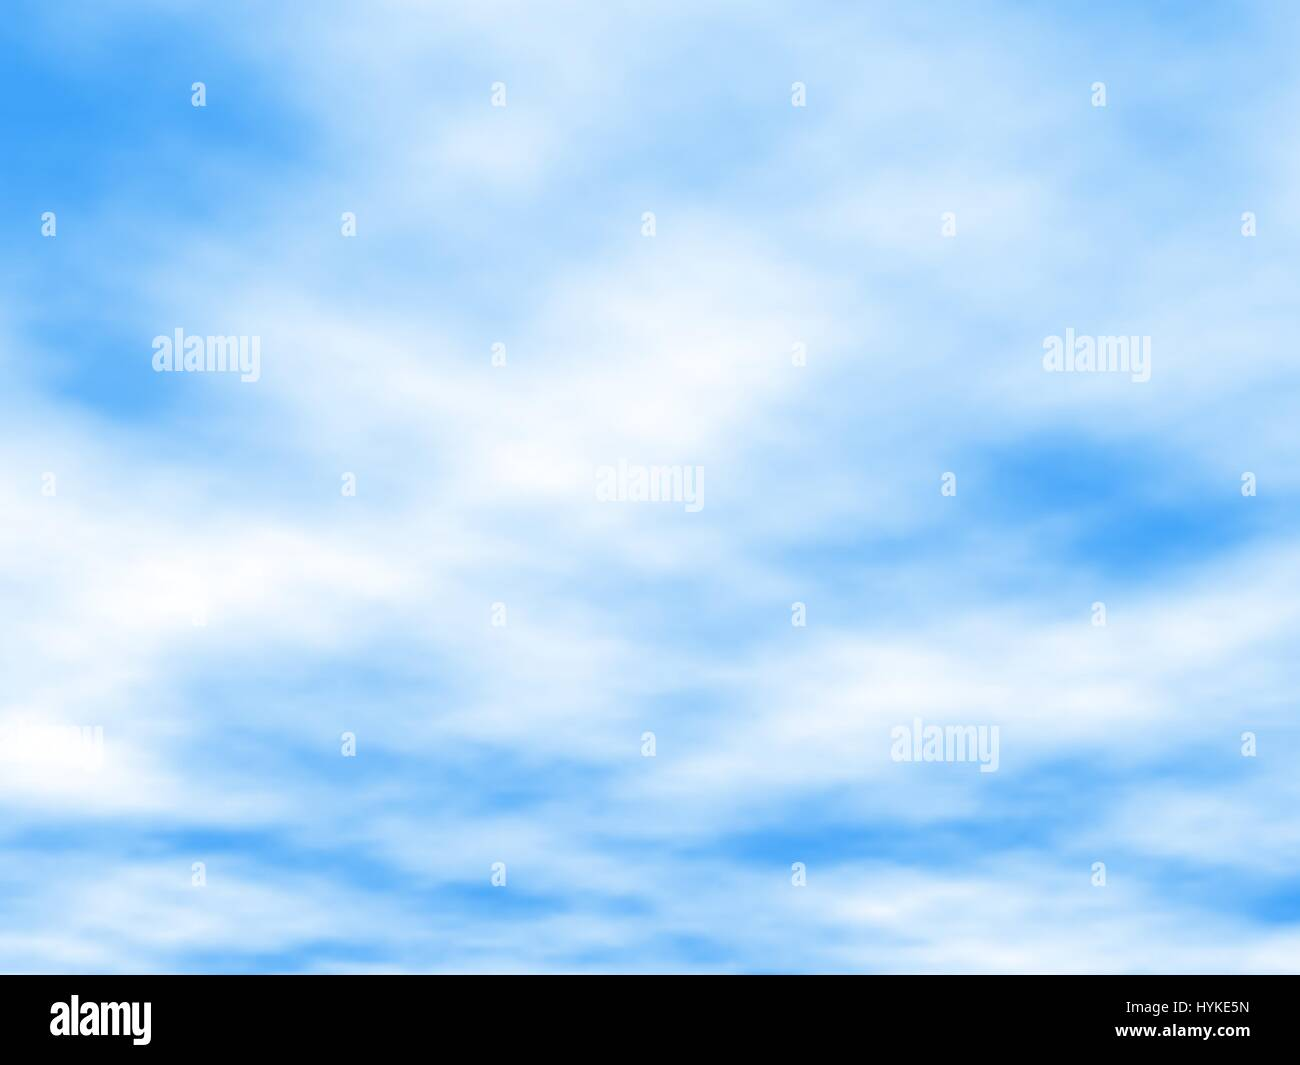 Editable vector illustration of white clouds in a blue sky made using a gradient mesh - Stock Image